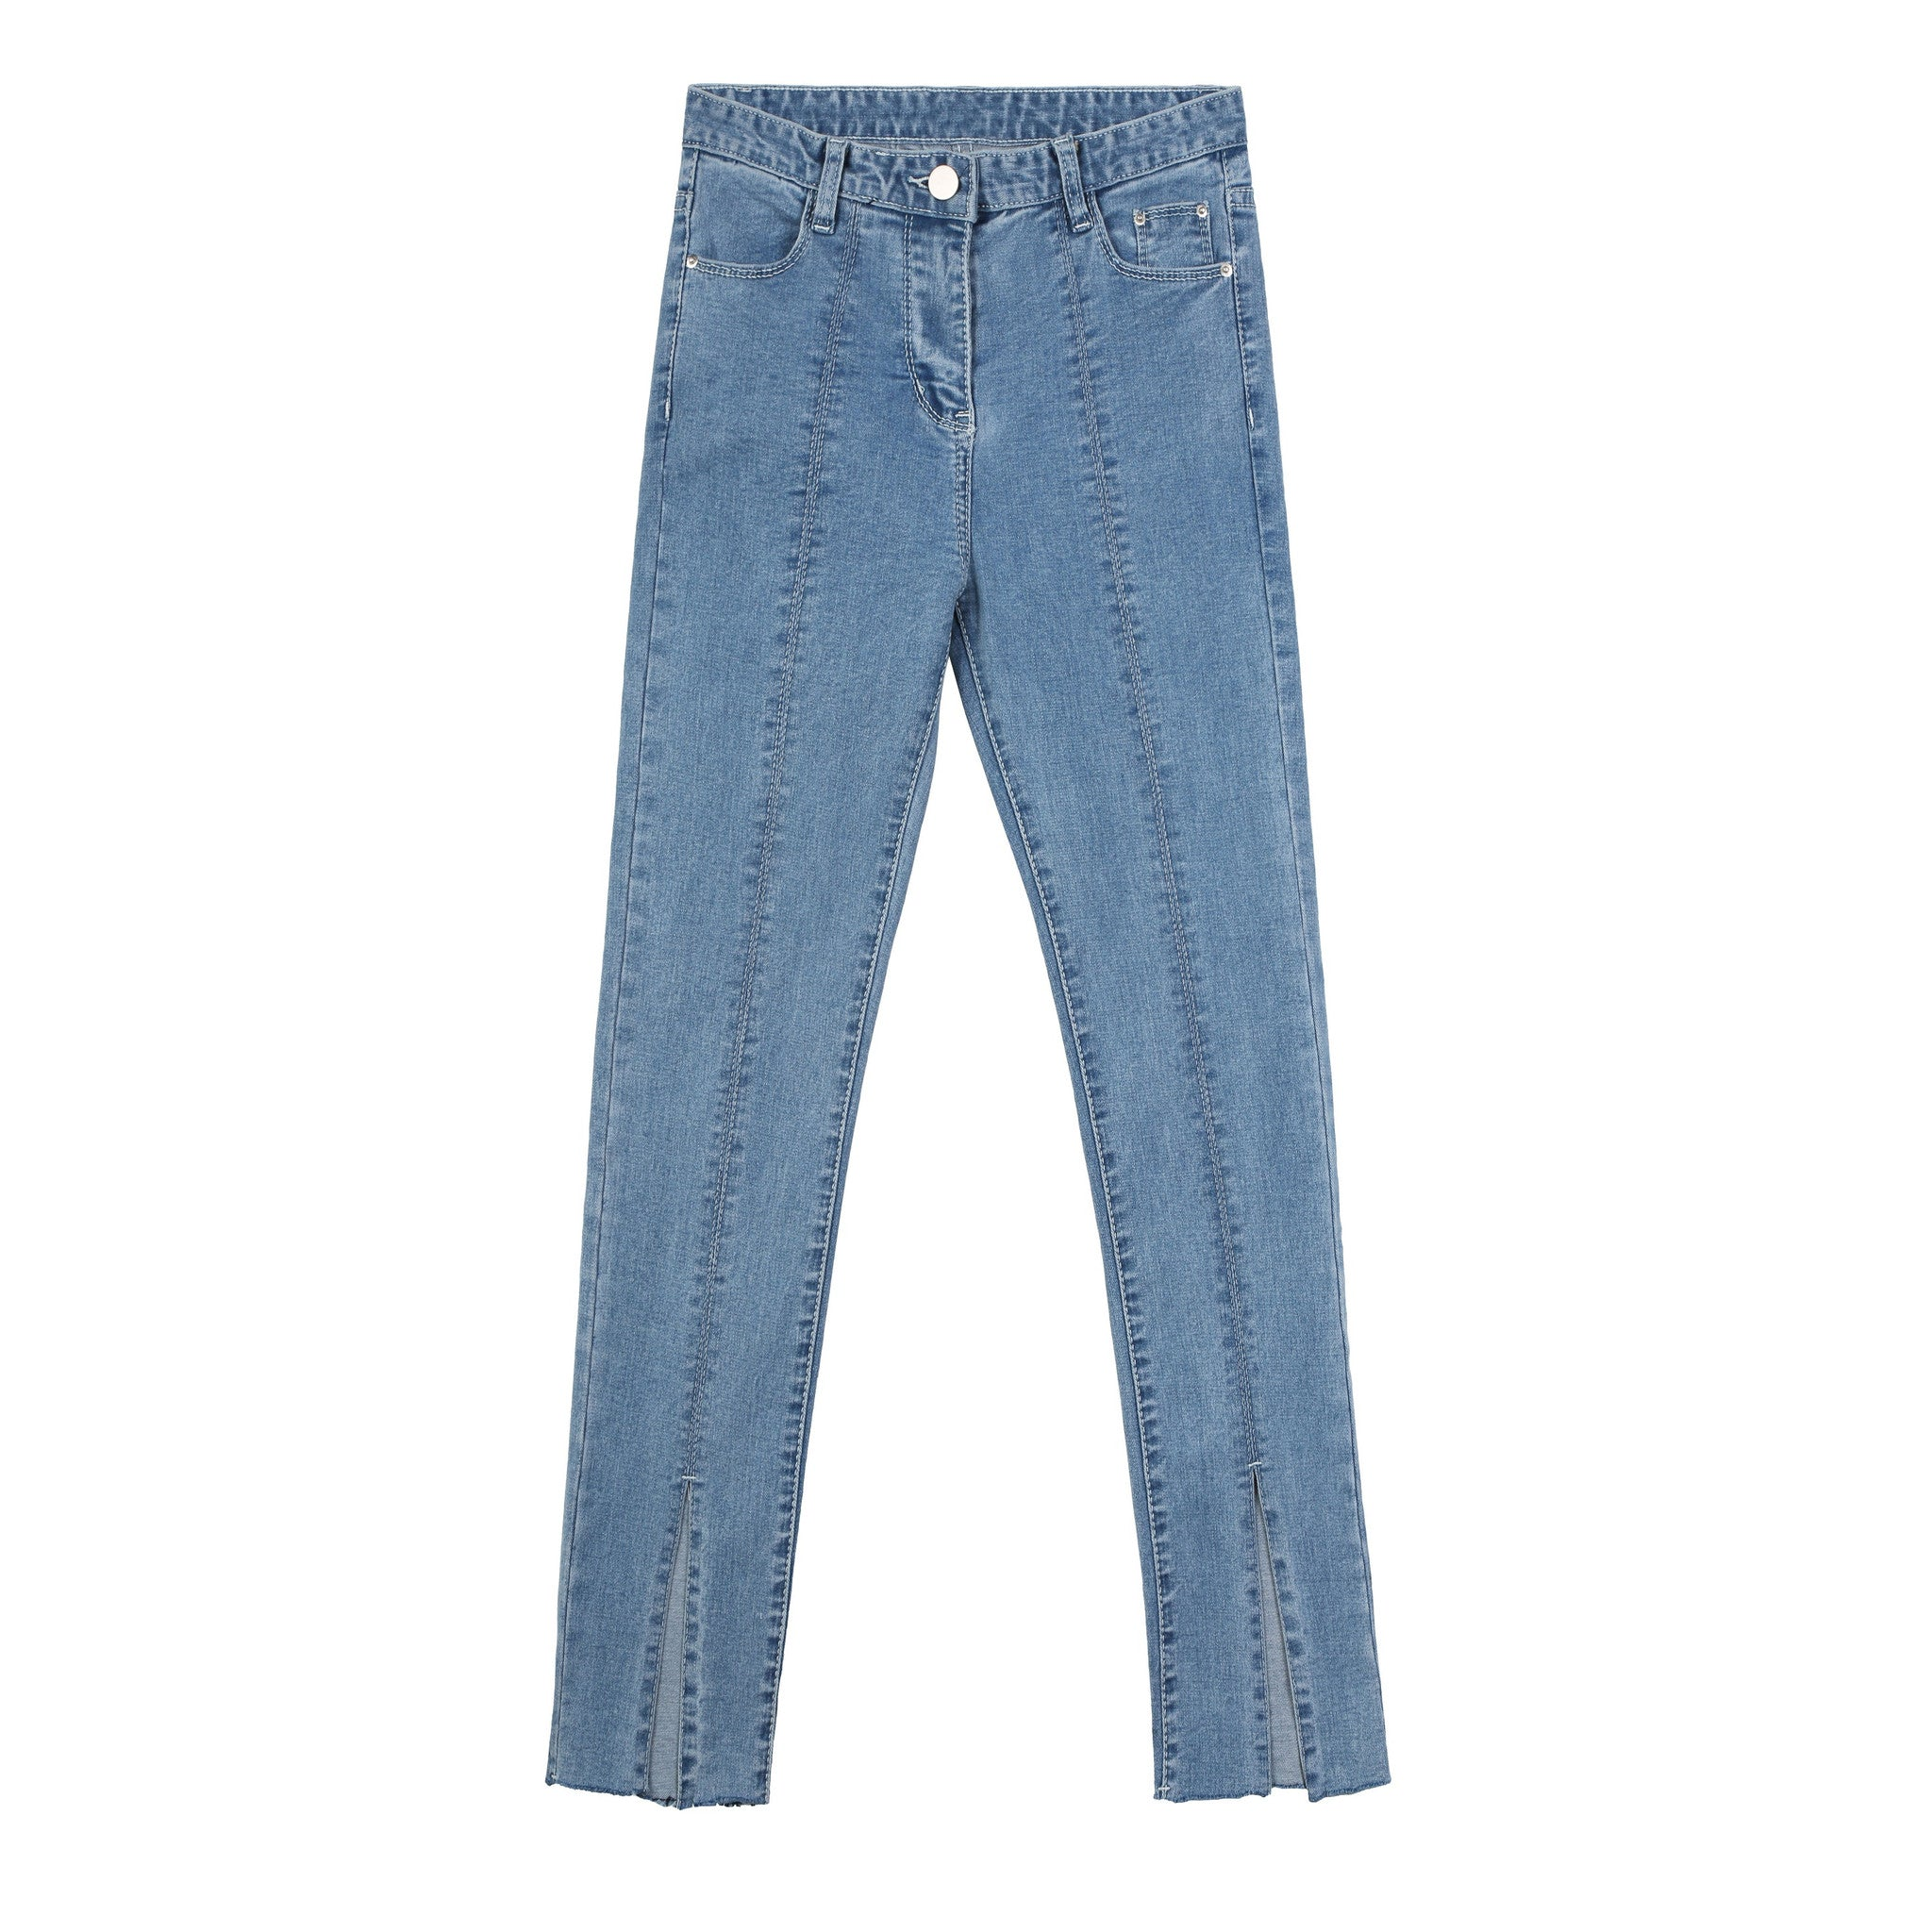 Split Front Light Blue Skinny Jeans - Indigo